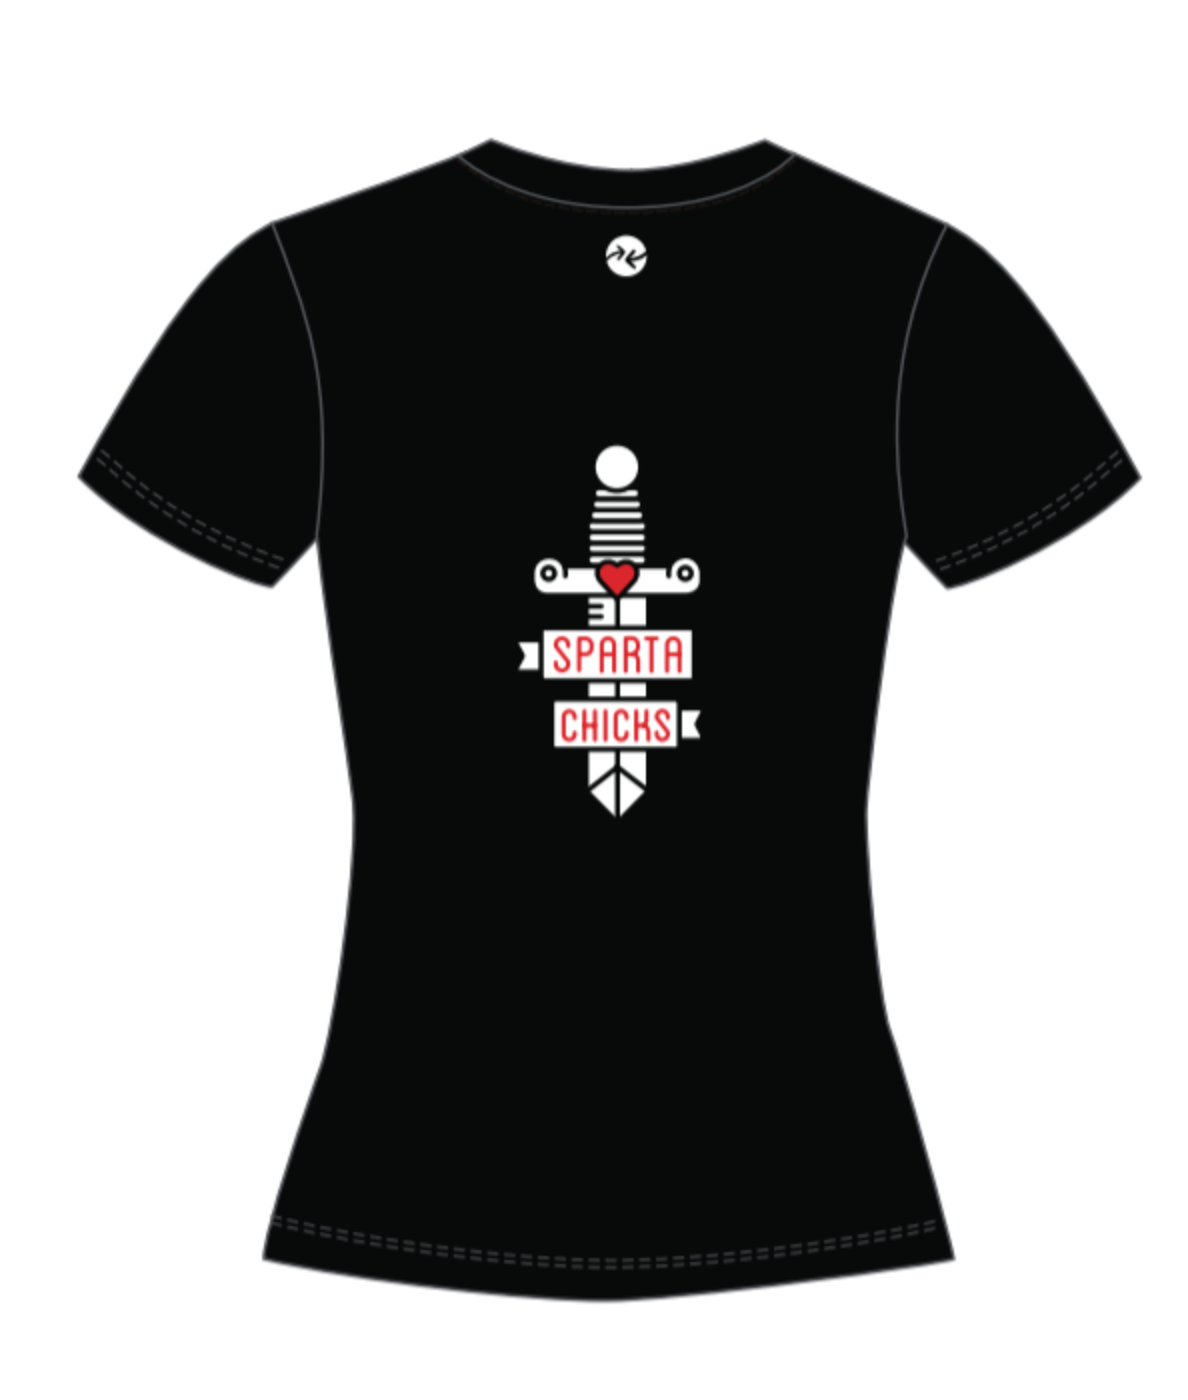 (1 remaining!) Casual cotton T-shirt